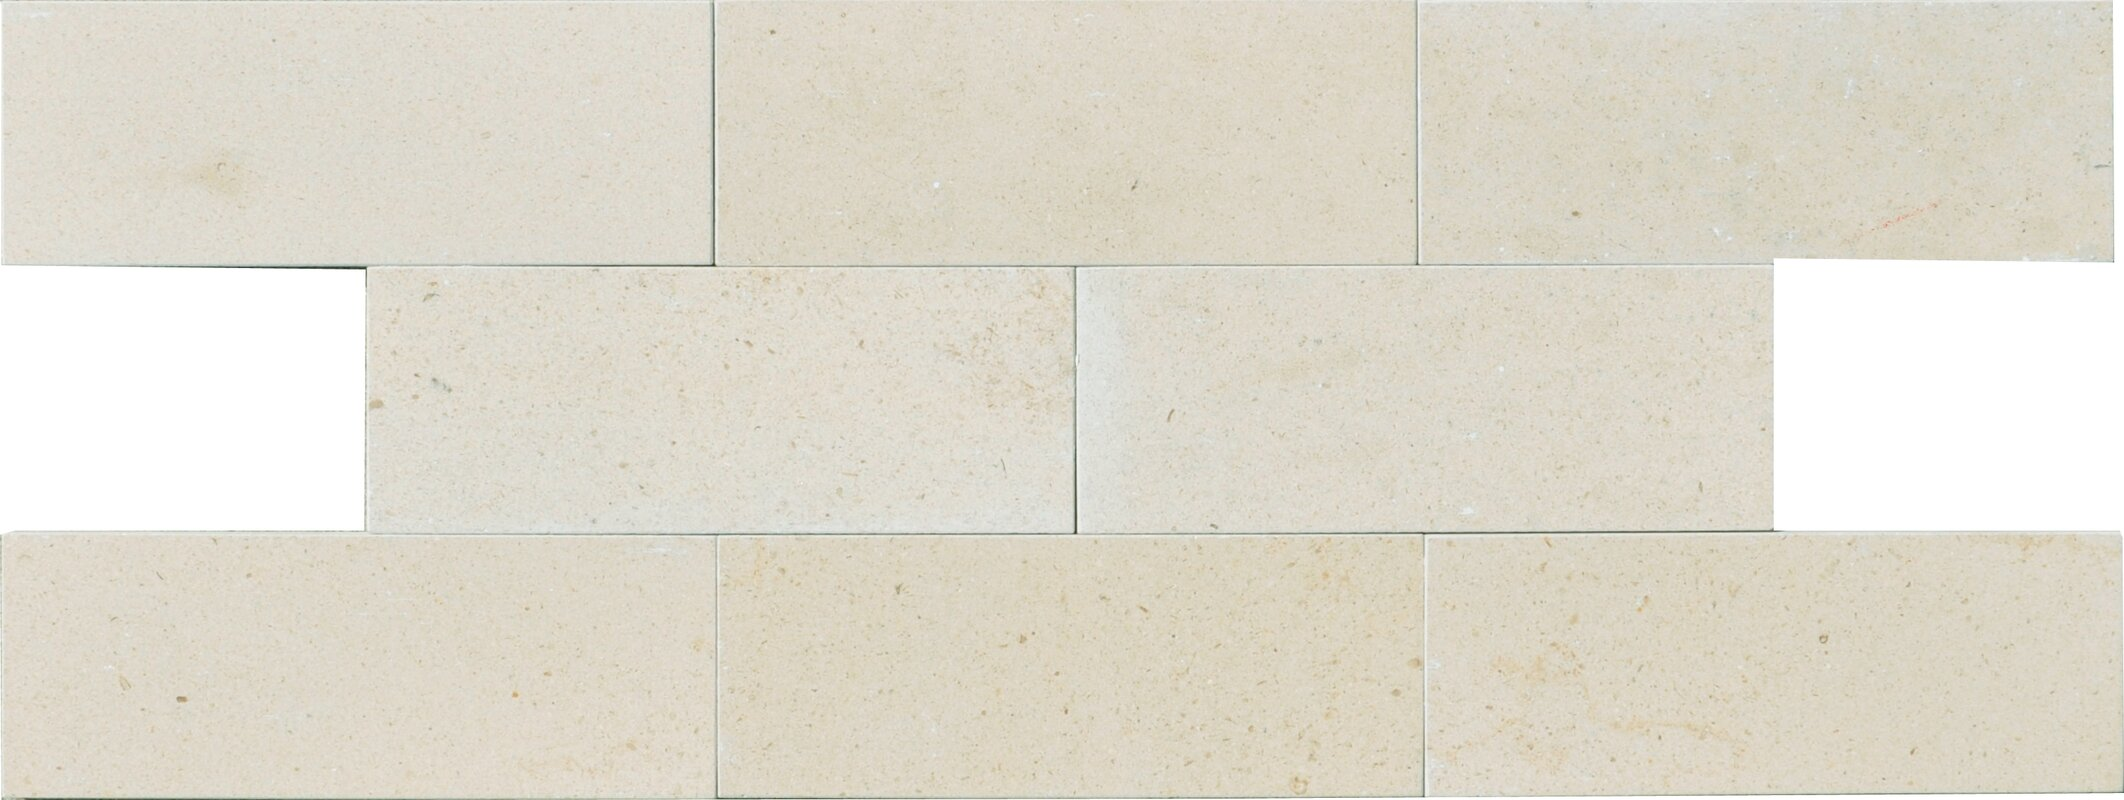 The bella collection osso 3 x 8 limestone subway tile in creamy osso 3 x 8 limestone subway tile in creamy latte dailygadgetfo Images